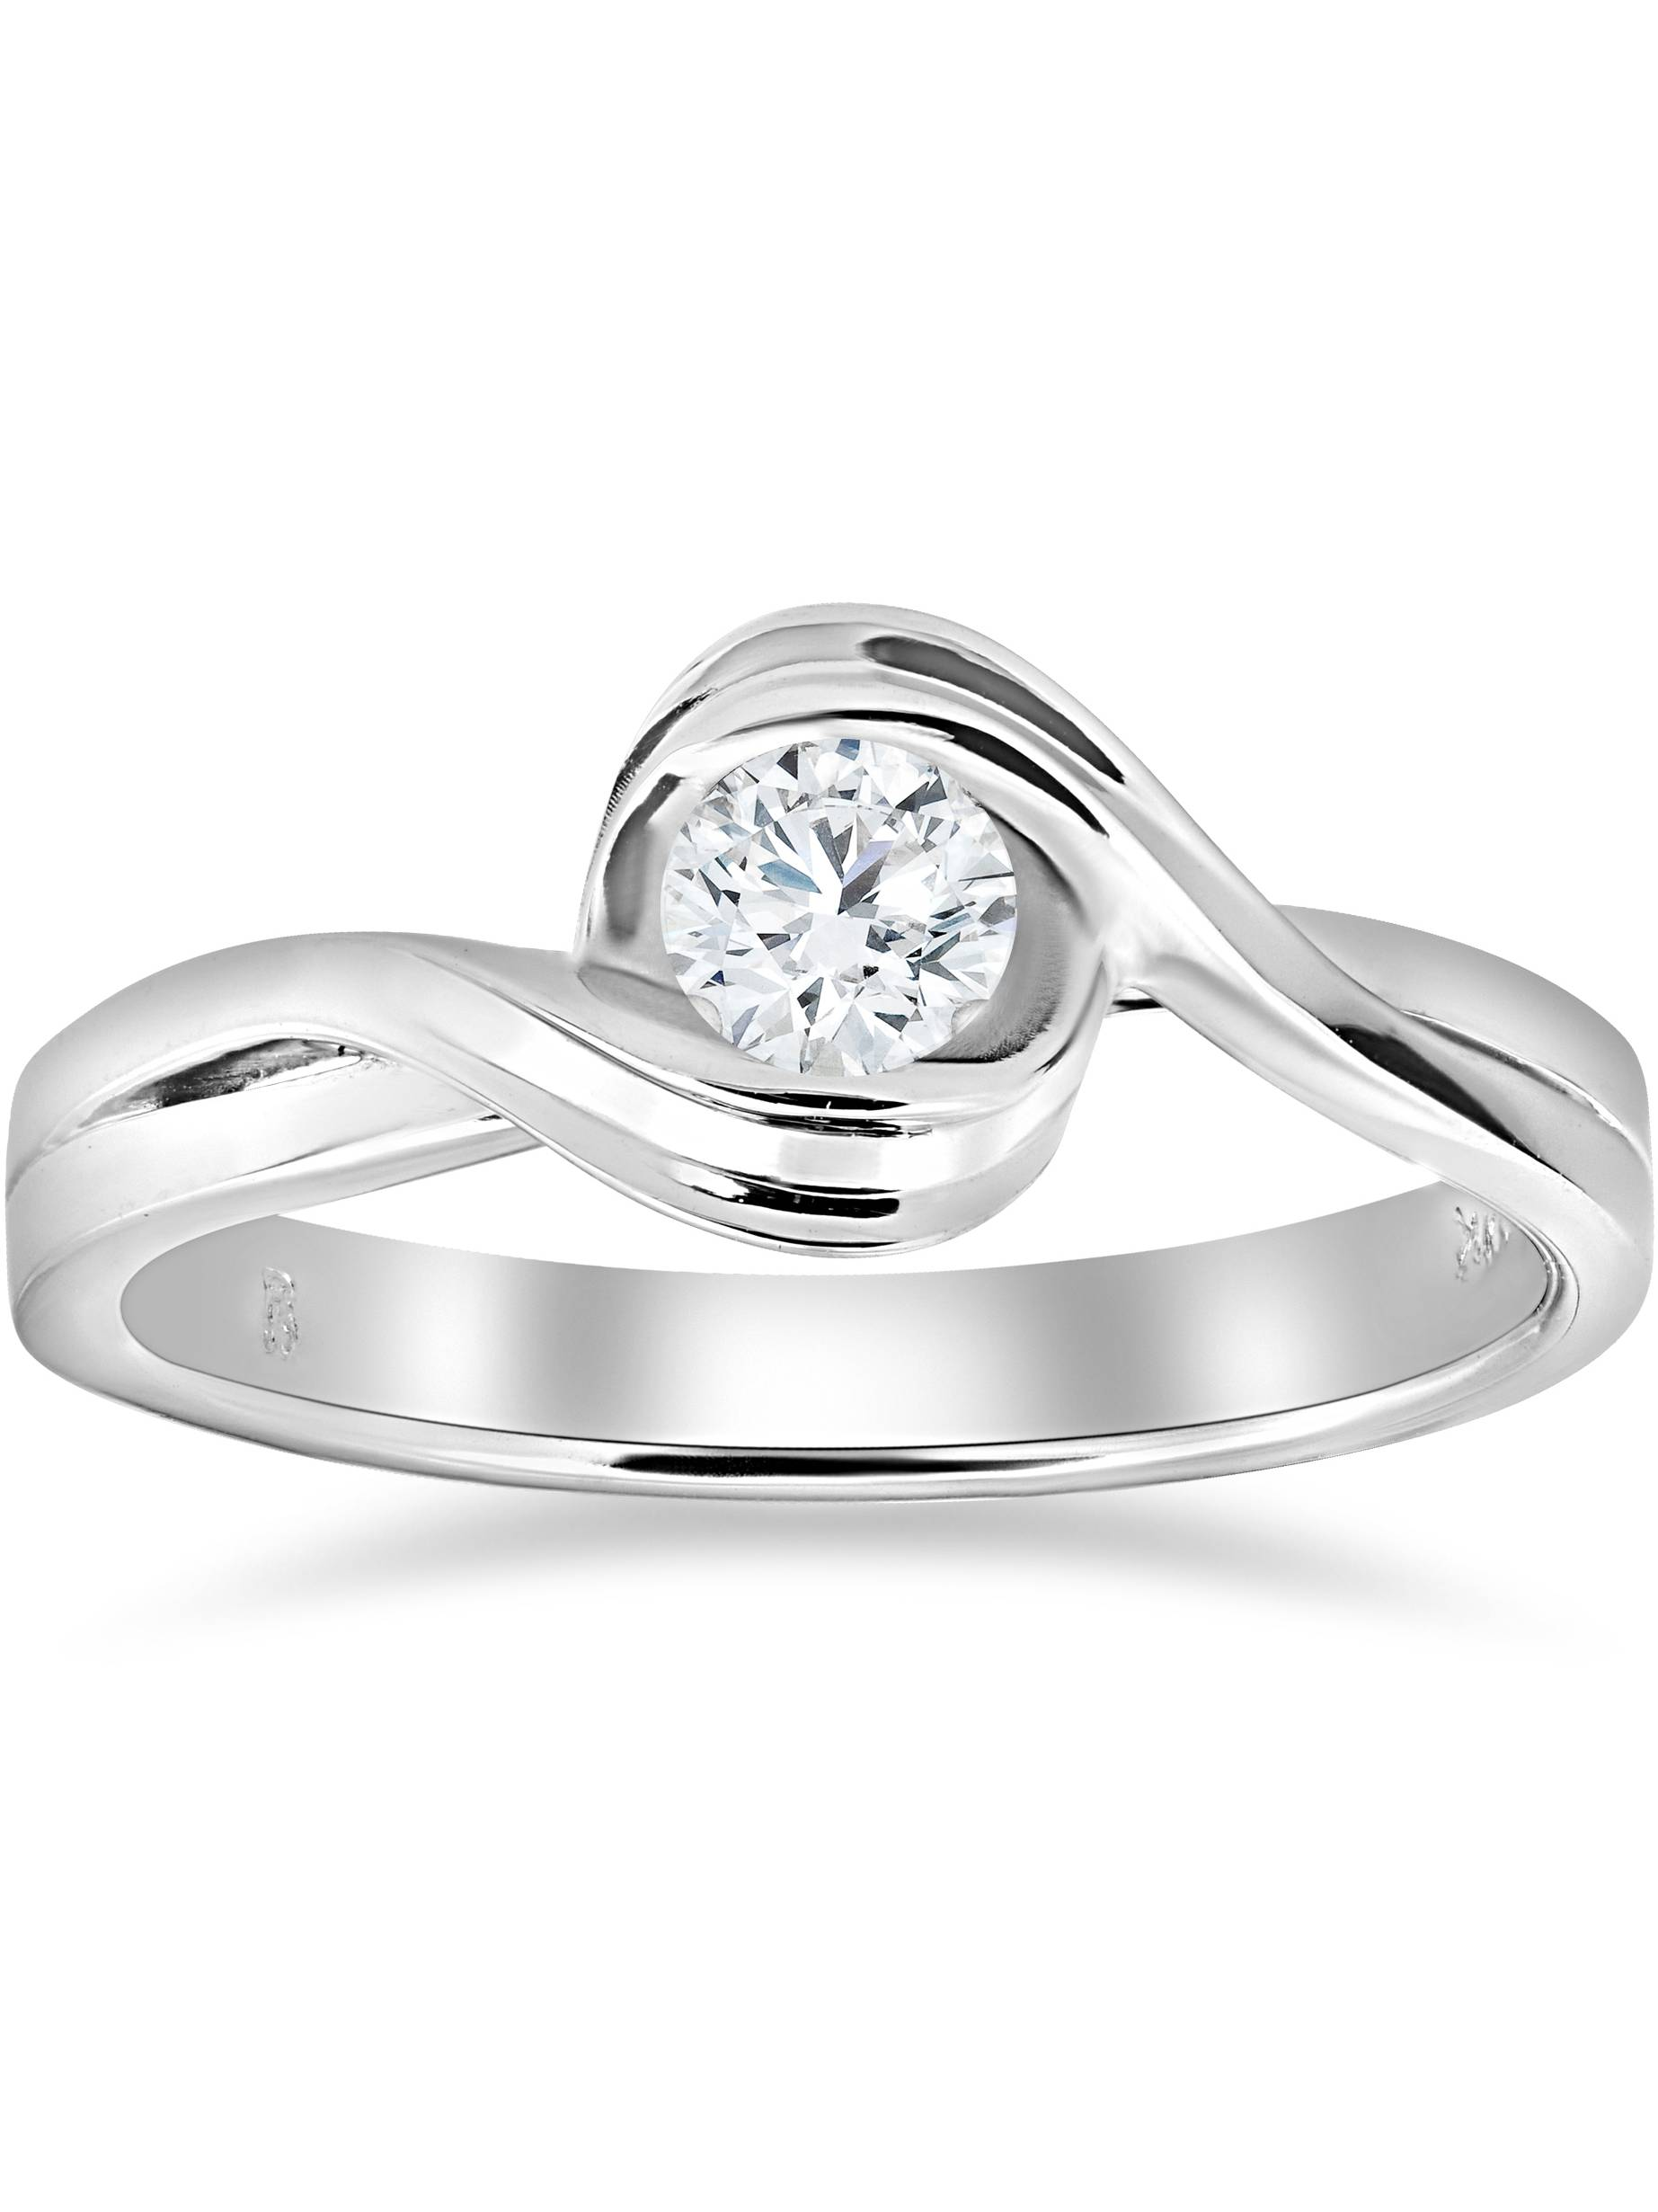 1 2 ct Solitaire Diamond Engagement Ring 14k White Gold Round Cut Jewelry by Pompeii3